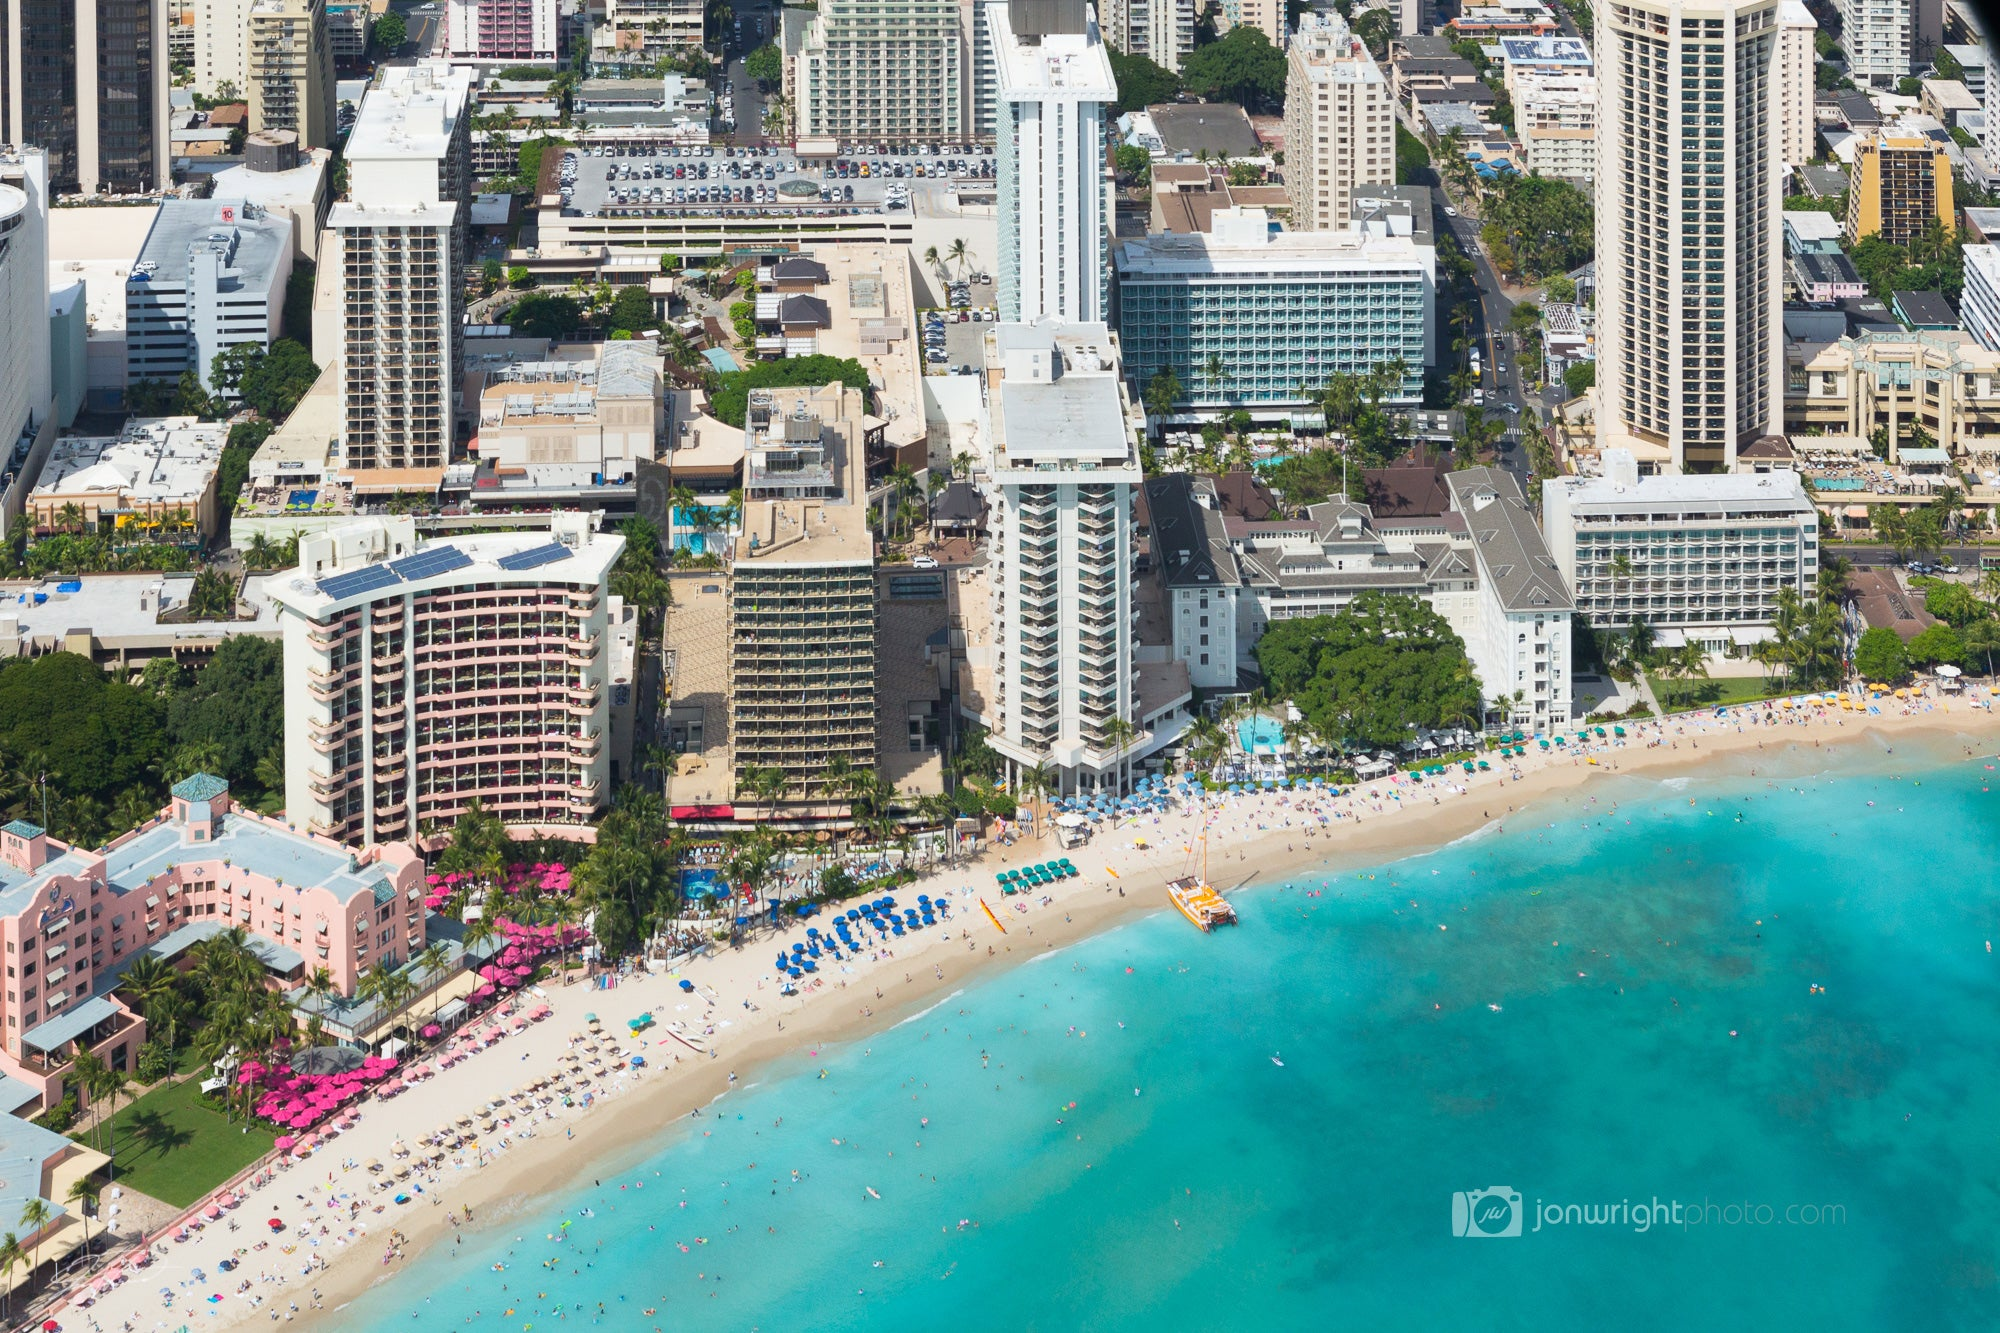 Waikiki Beach - Hawaii - Oahu